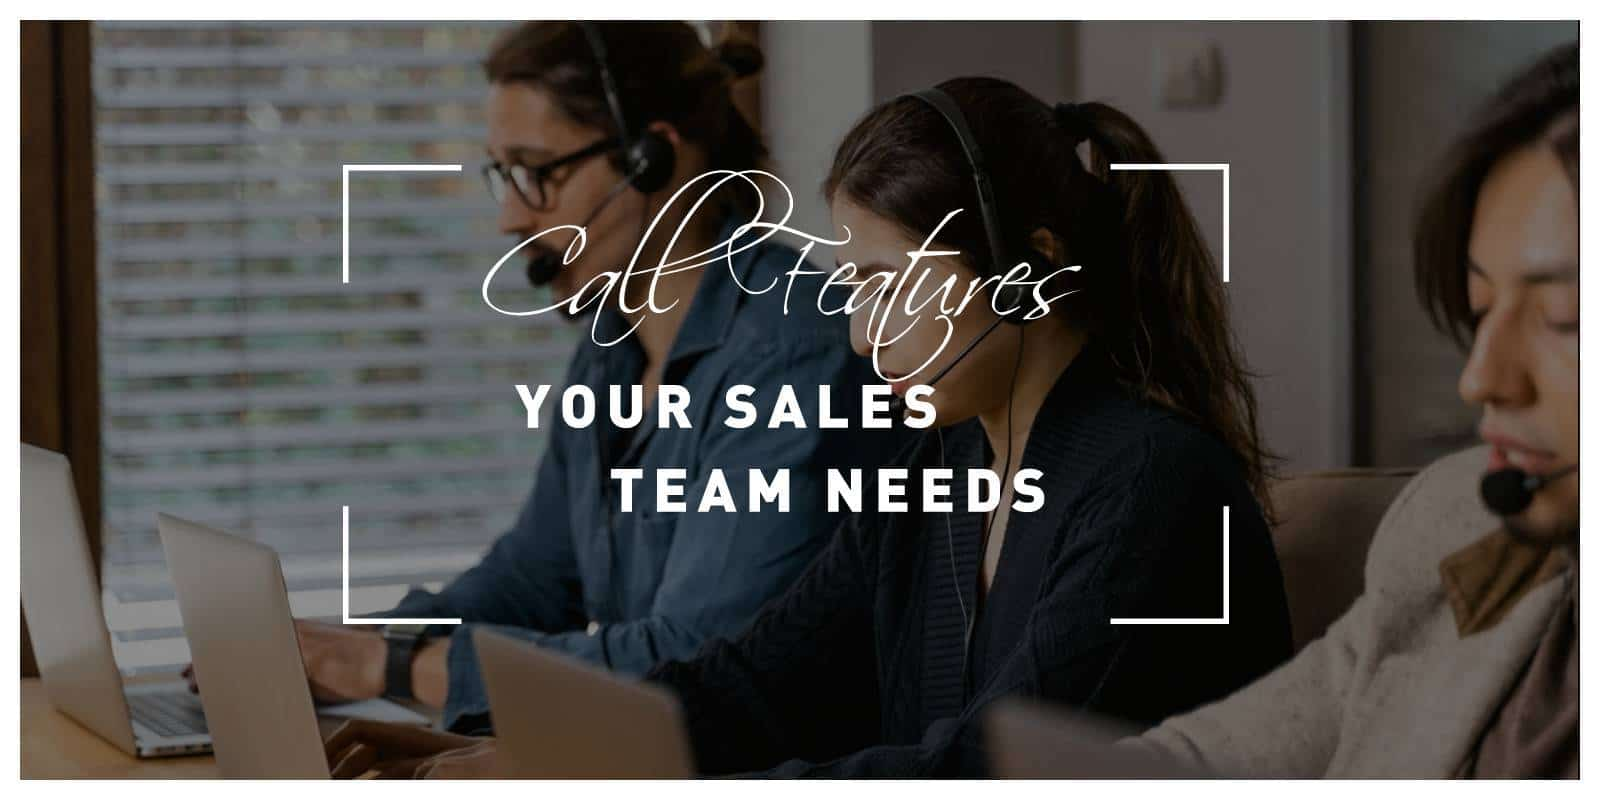 Call Features Your Sales Team Needs